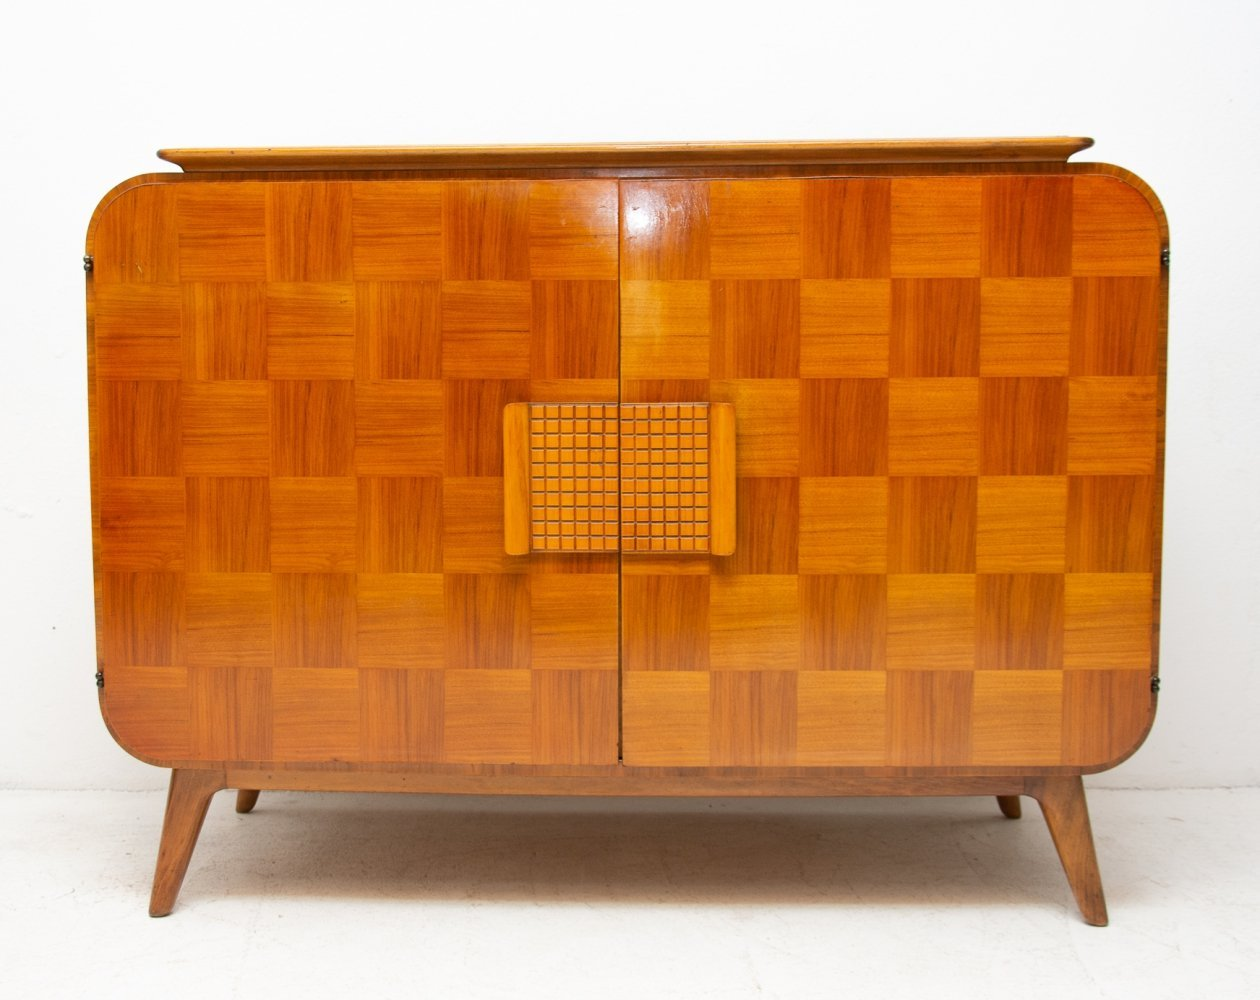 Mid century cataloque sideboard by Jindrich Halabala for UP Zavody, 1940